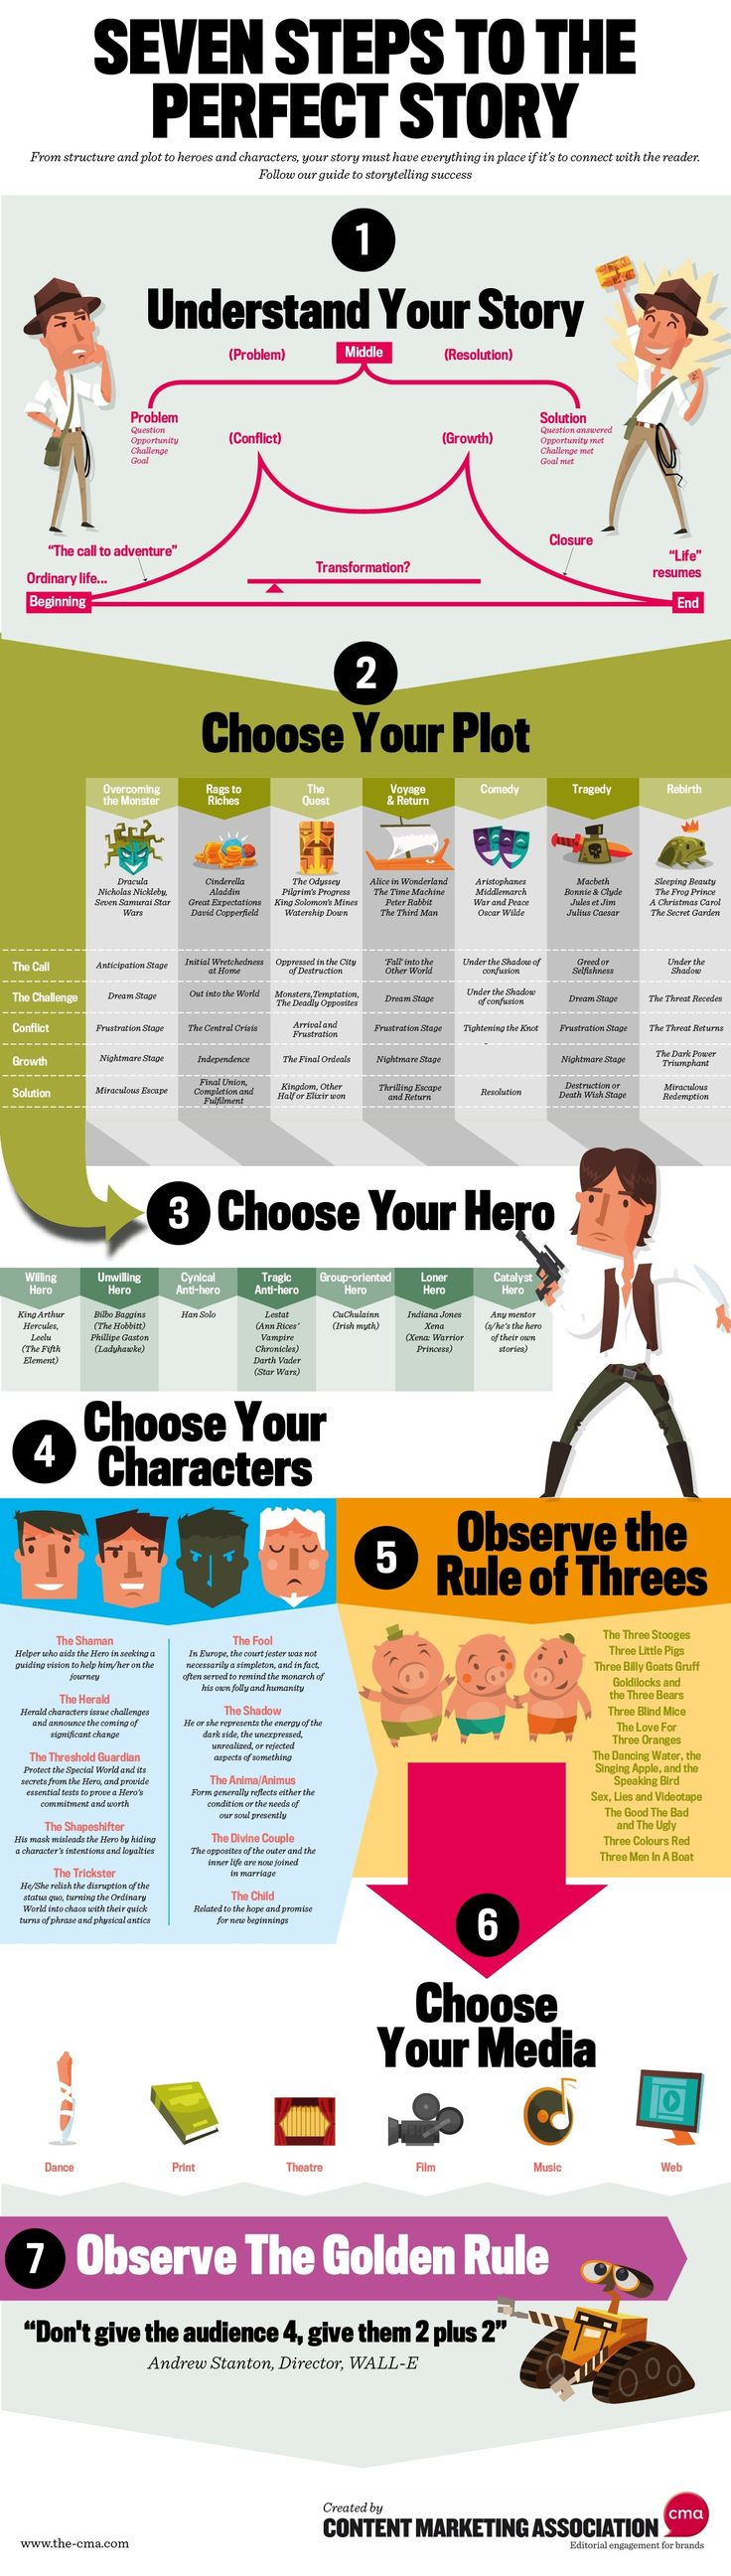 "The Digital Rocking Chair's insight: Another fun infographic ... this time from the Content Marketing Association.CMA:  ""From structure and plot to heroes and characters, your story must have everything in place if it's to connect with the reader. Follow our guide to storytelling success."""